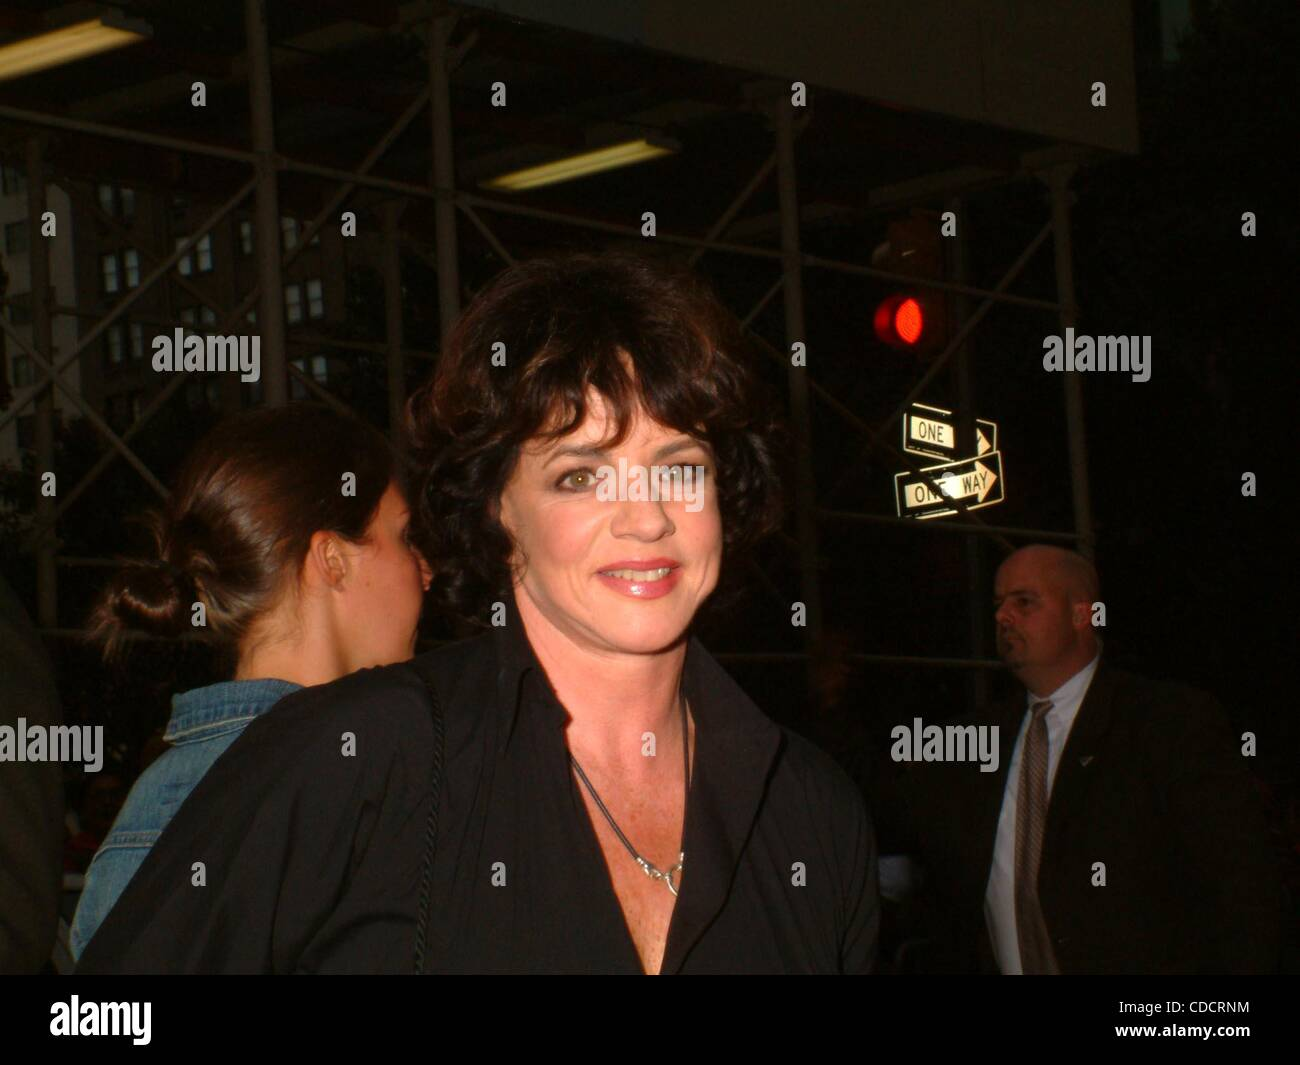 K32146ML NEW YORK PREMIERE OF LE DIVORCE AT PARIS THEATER, NEW YORK New York 08/05/2003.  /    STOCKARD CHANNING(Credit - Stock Image